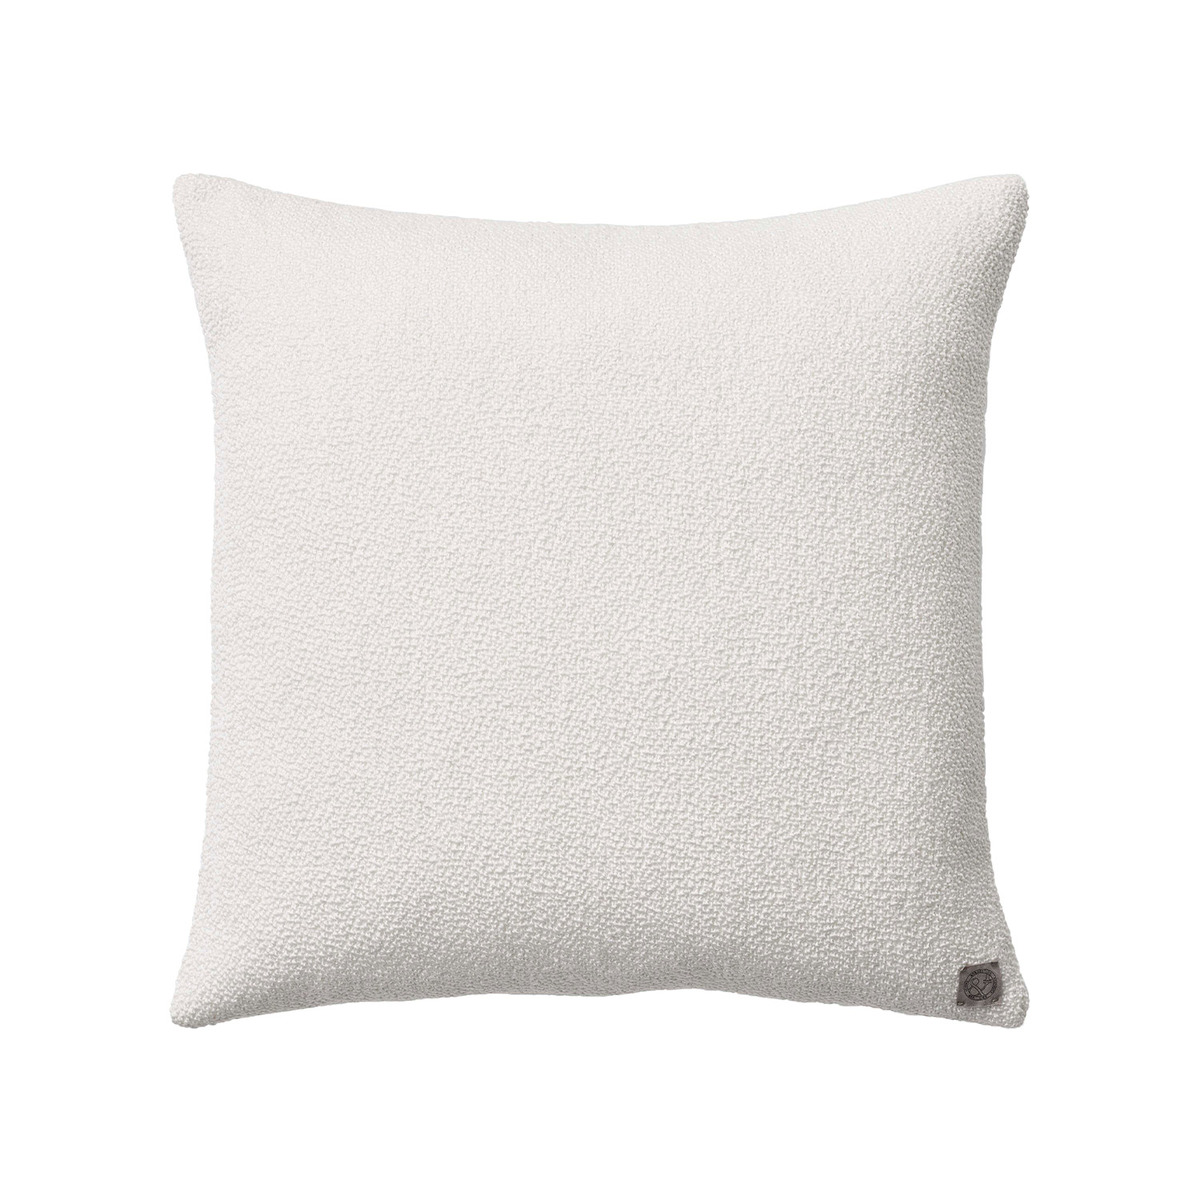 &Tradition Collect Boucle SC28 cushion, 50 x 50 cm, ivory from &Tradition